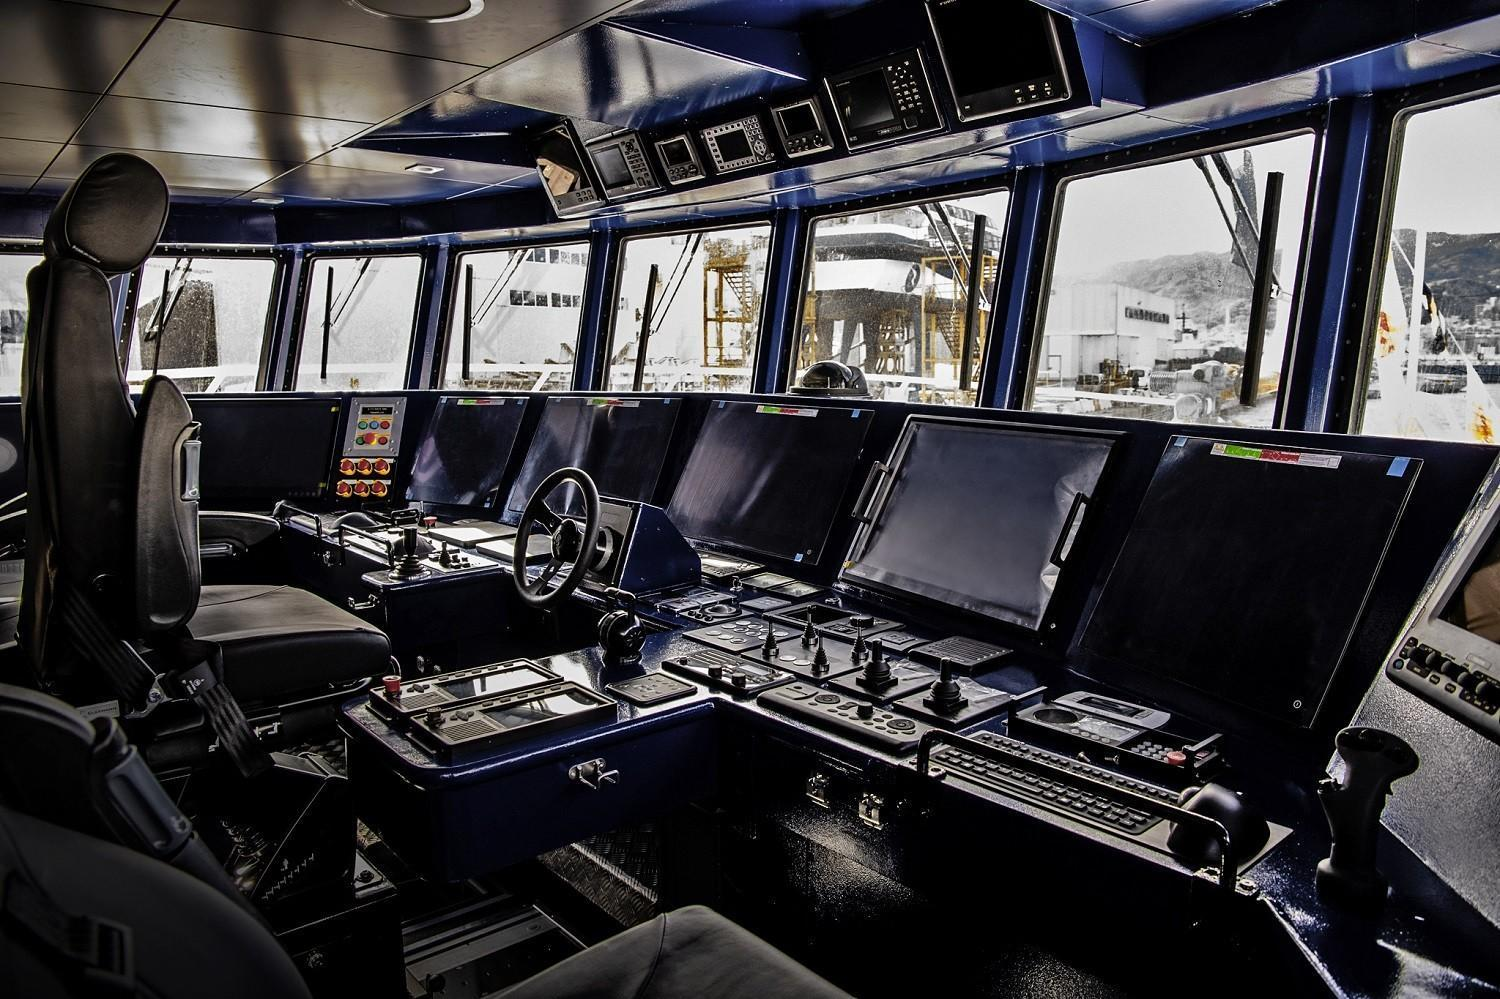 """The Italian Coast Guard's new patrol boat CP420 """"Natale De Grazia,"""" is fitted with the SOVERON communications suite from Rohde & Schwarz"""